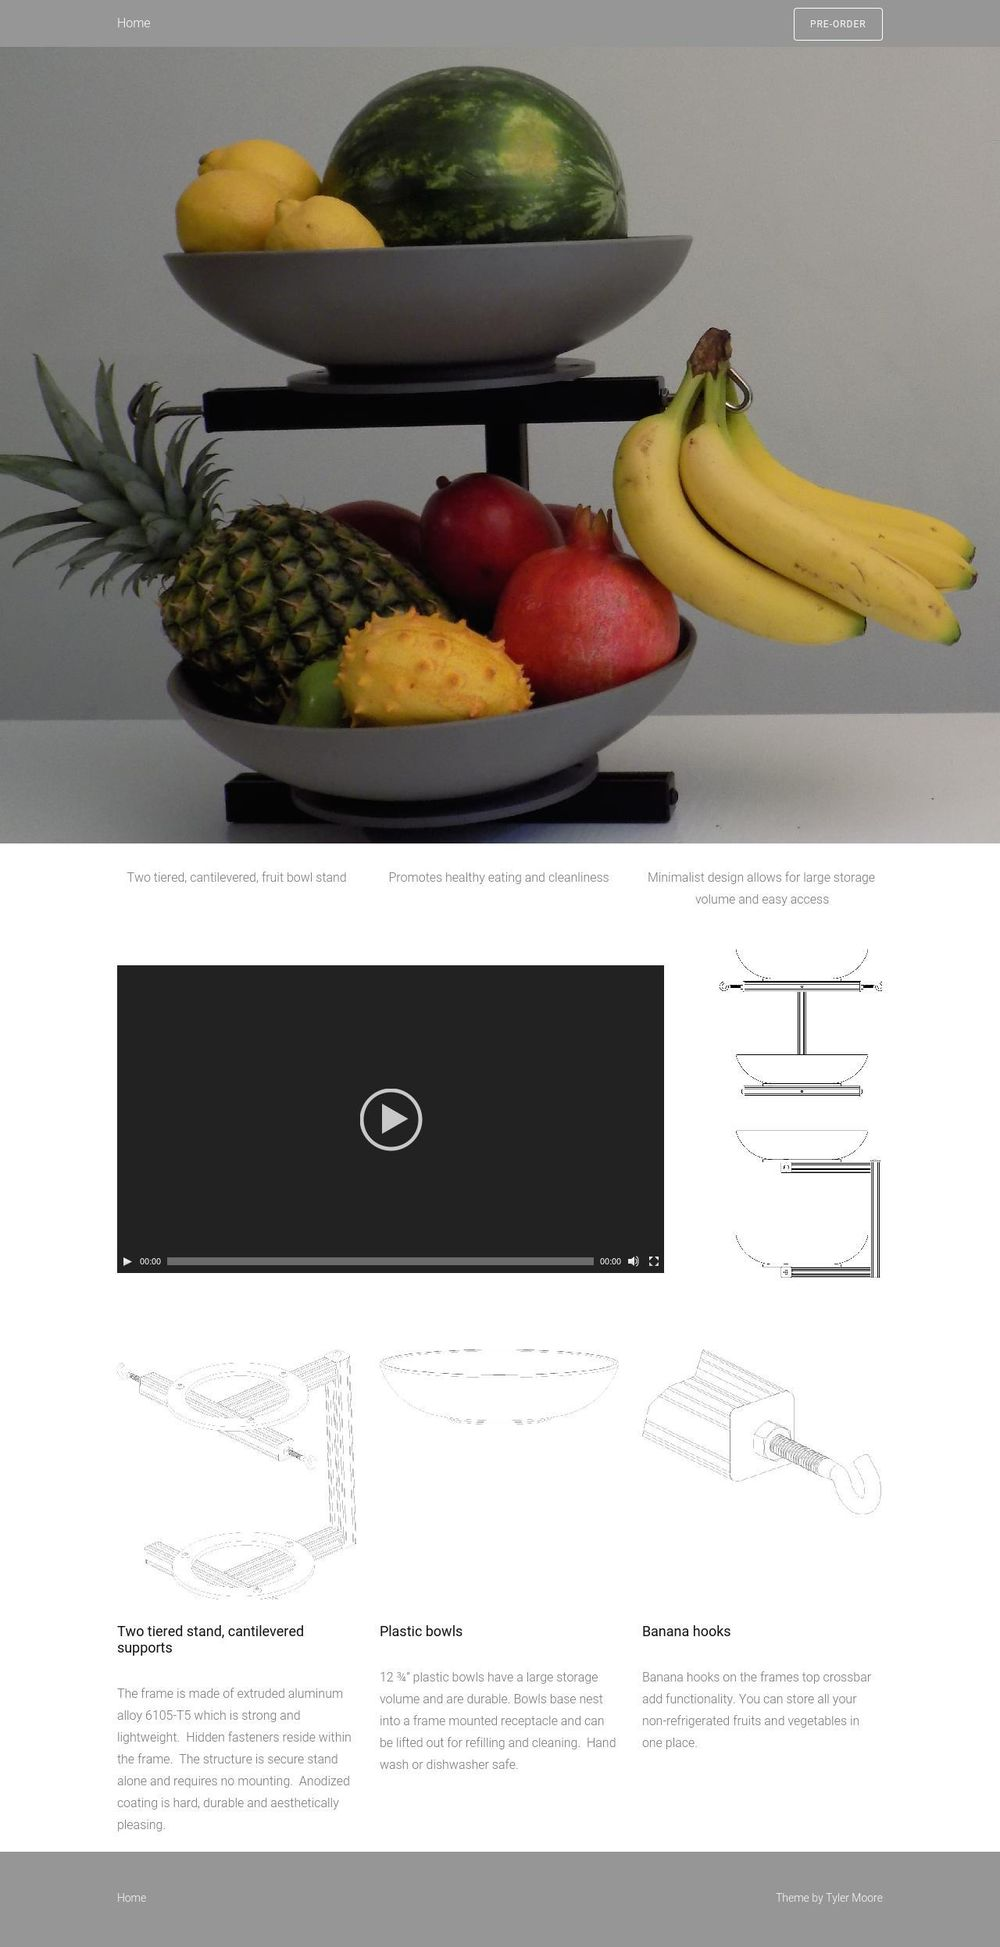 Fruitierean - image 1 - student project